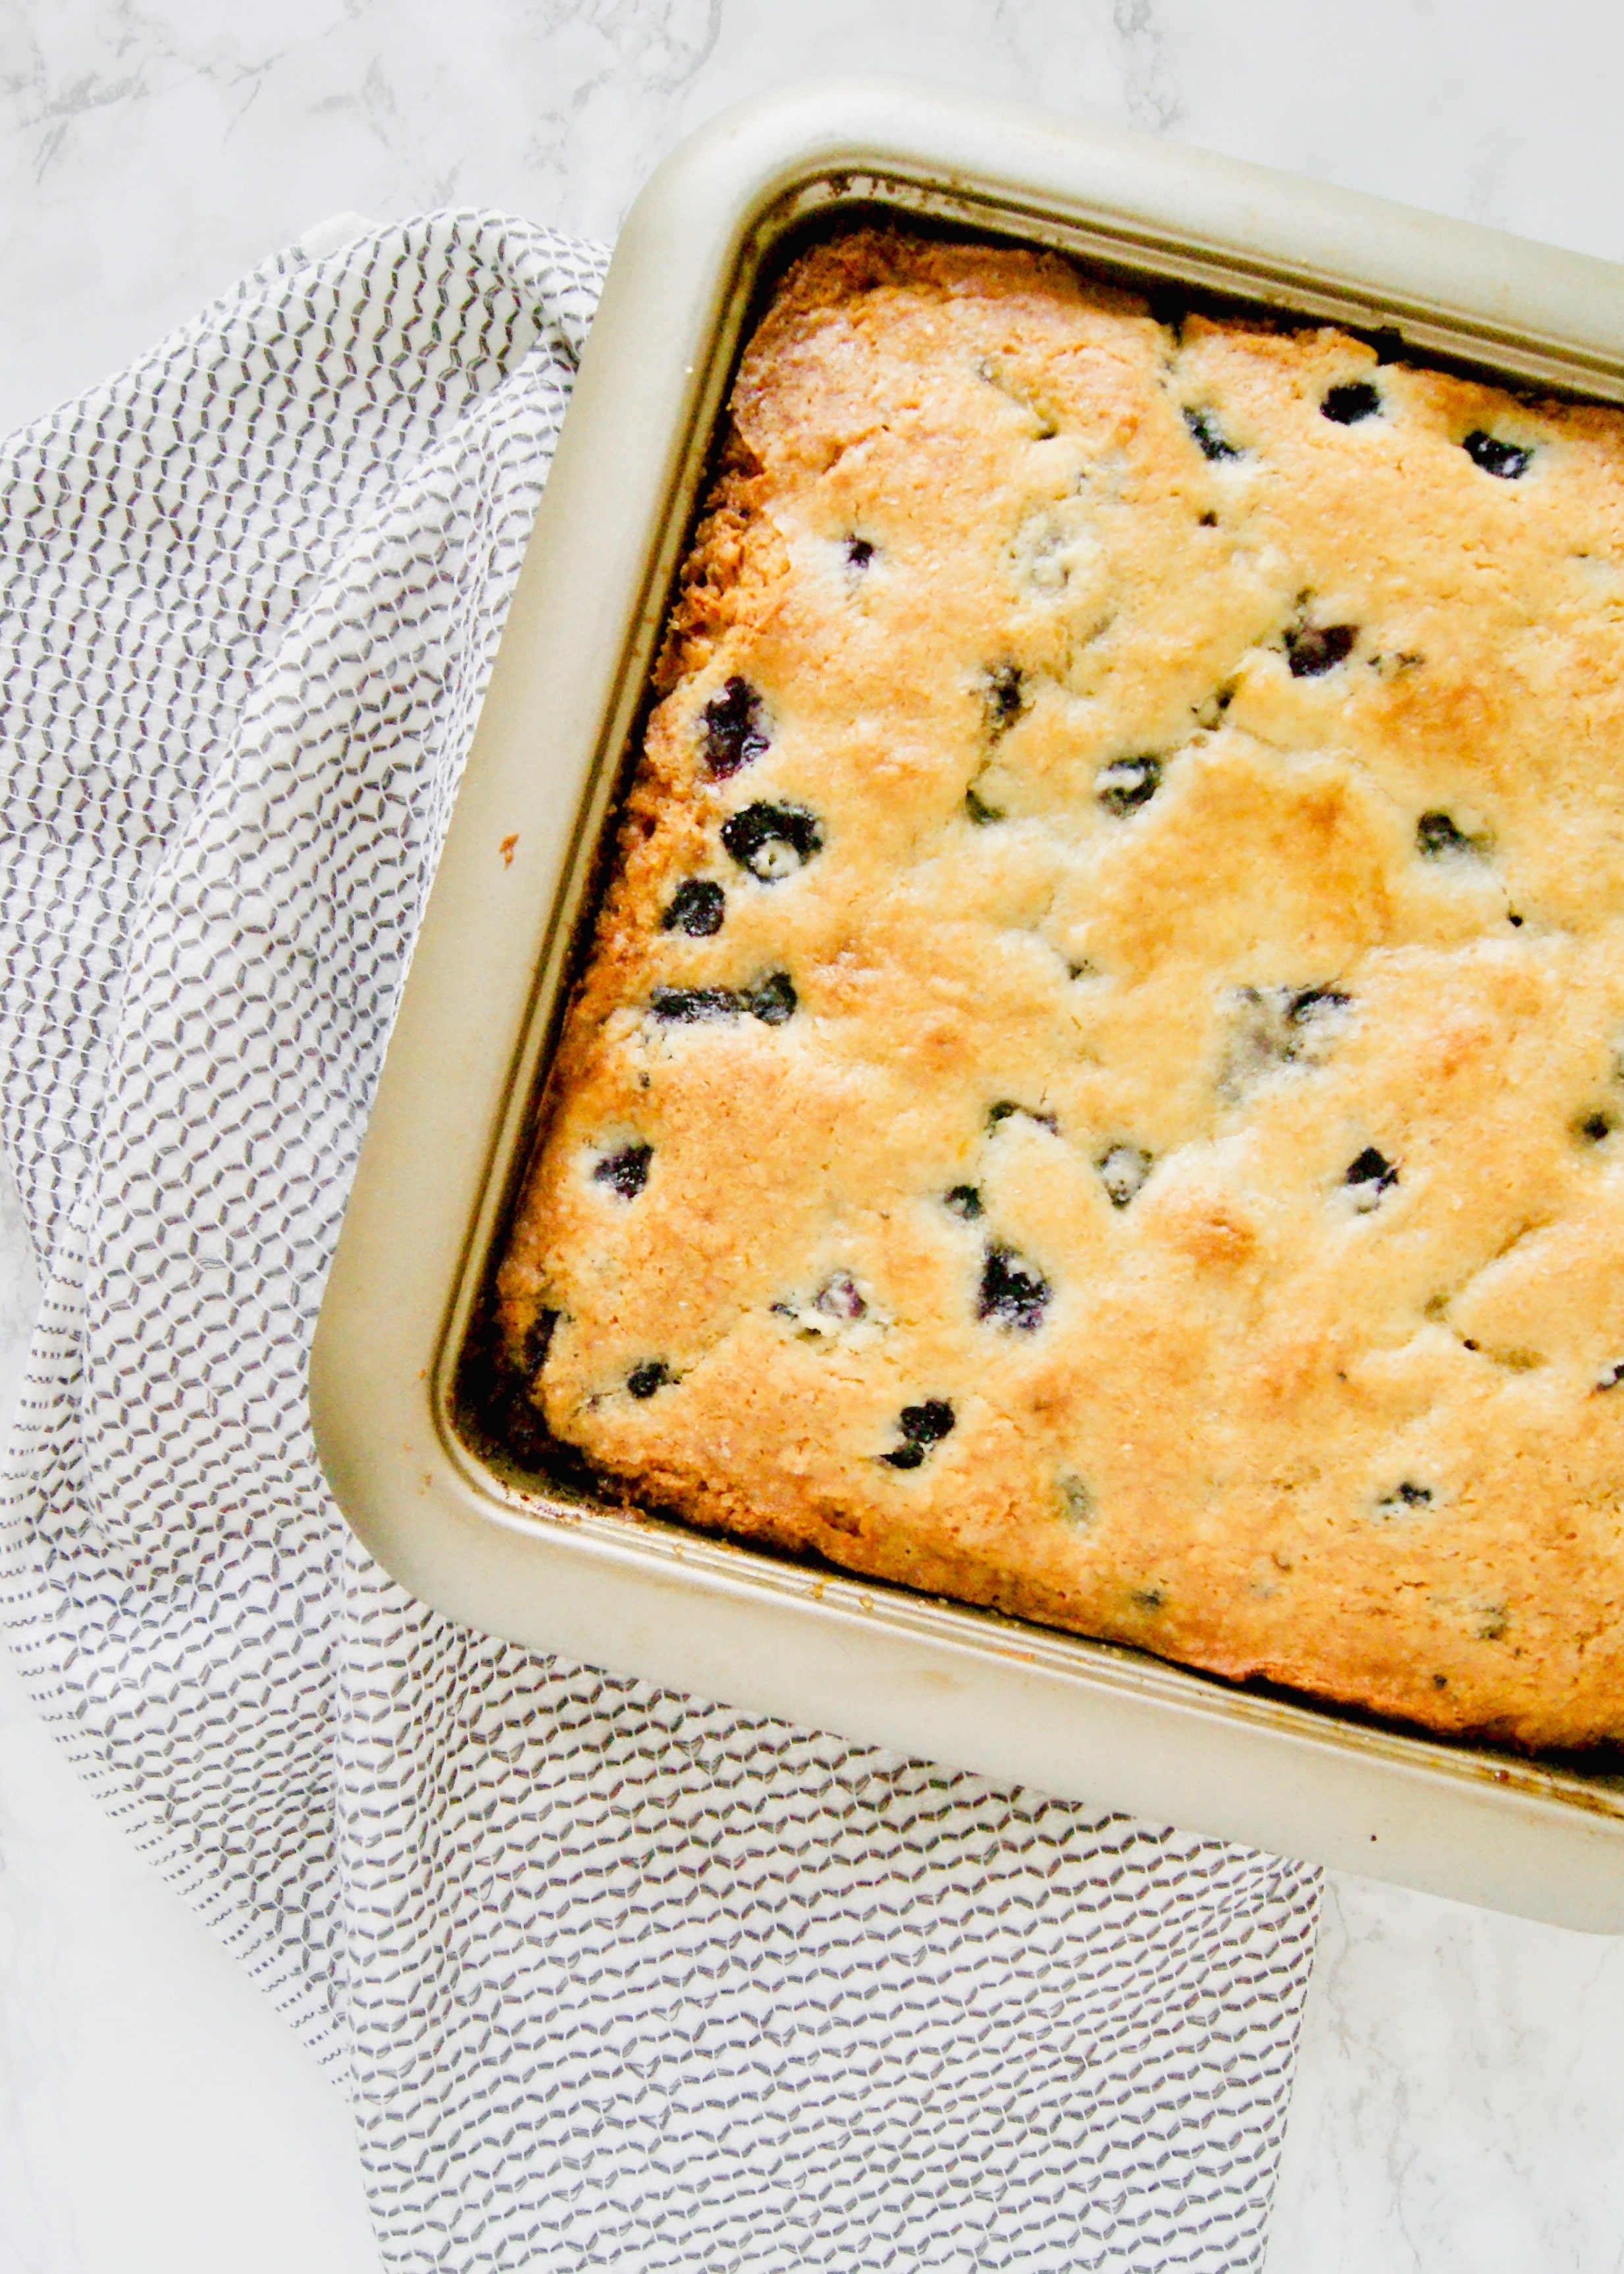 Meet your new breakfast or brunch bff? Lemon Blueberry Breakfast Cake is moist from the buttermilk, uses lemon zest to provide subtle lemon flavor, and chock FULL of fresh blueberries. Recipe at KathleensCravings.com #breakfastcake #coffeecake #buttermilkrecipes #brunchrecipe #blueberries